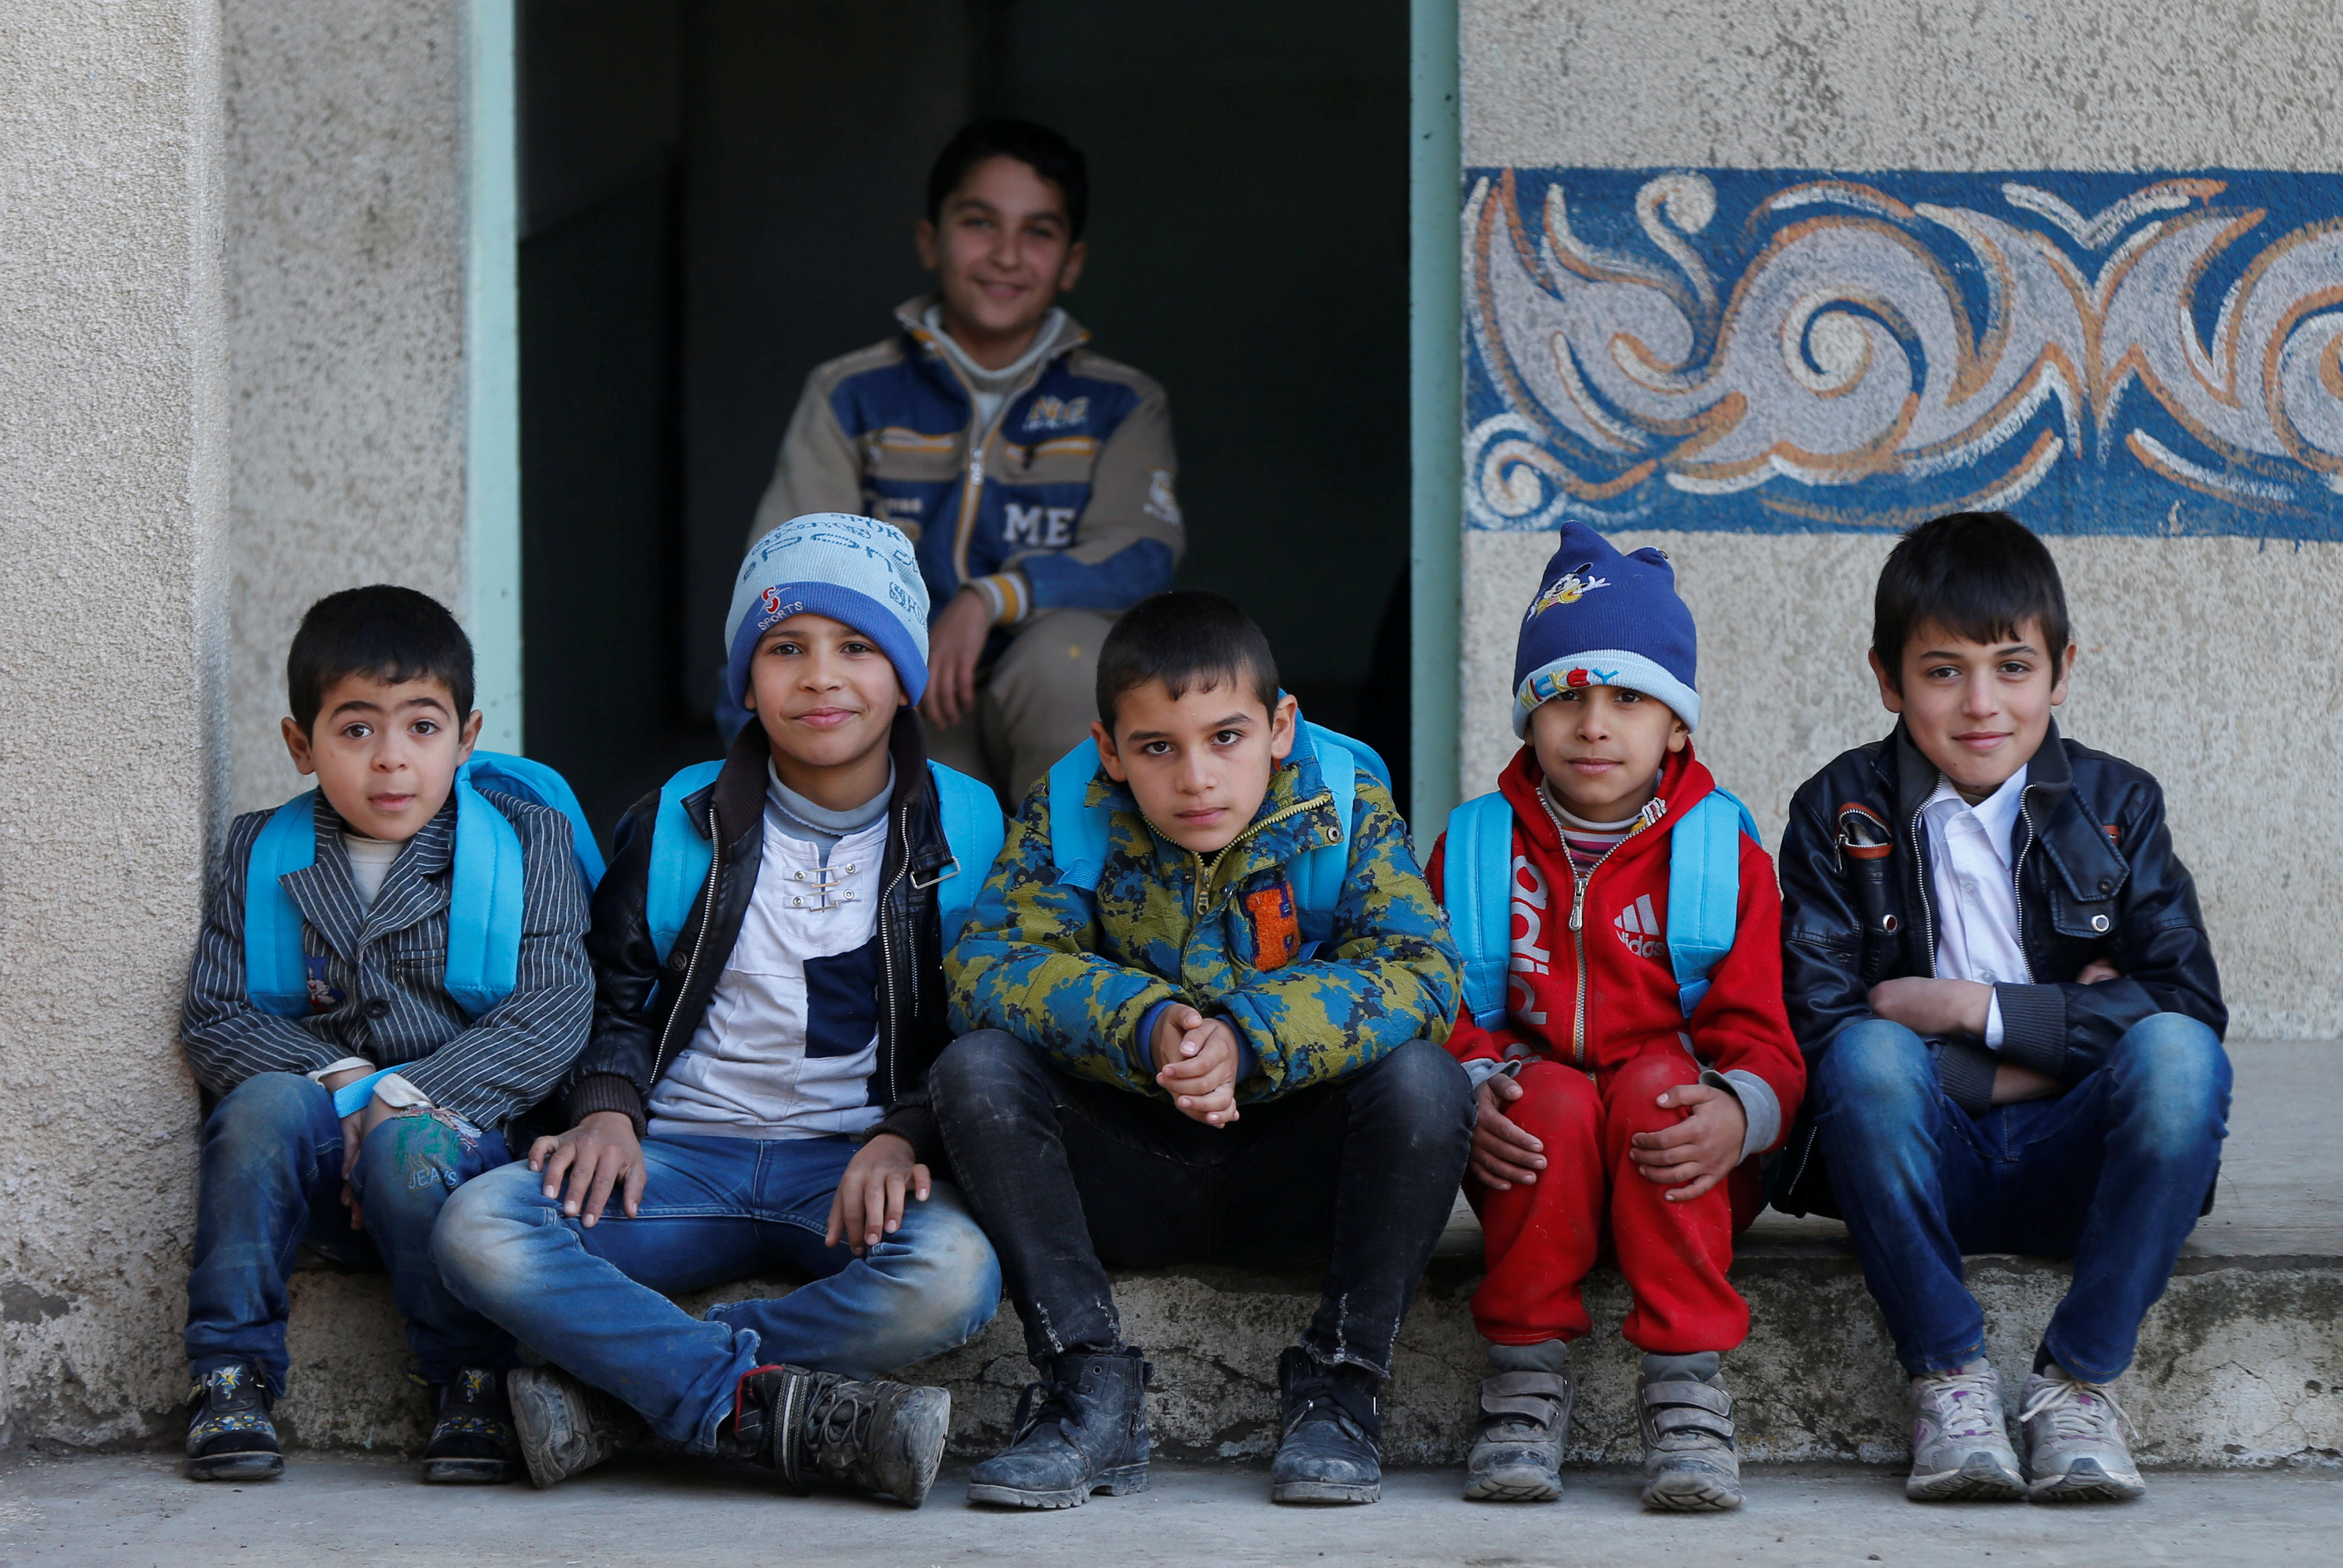 For two years, under the Islamic State regime, only boys were allowed to attend school in Mosul. Photo by Muhammad Hamed/Reuters